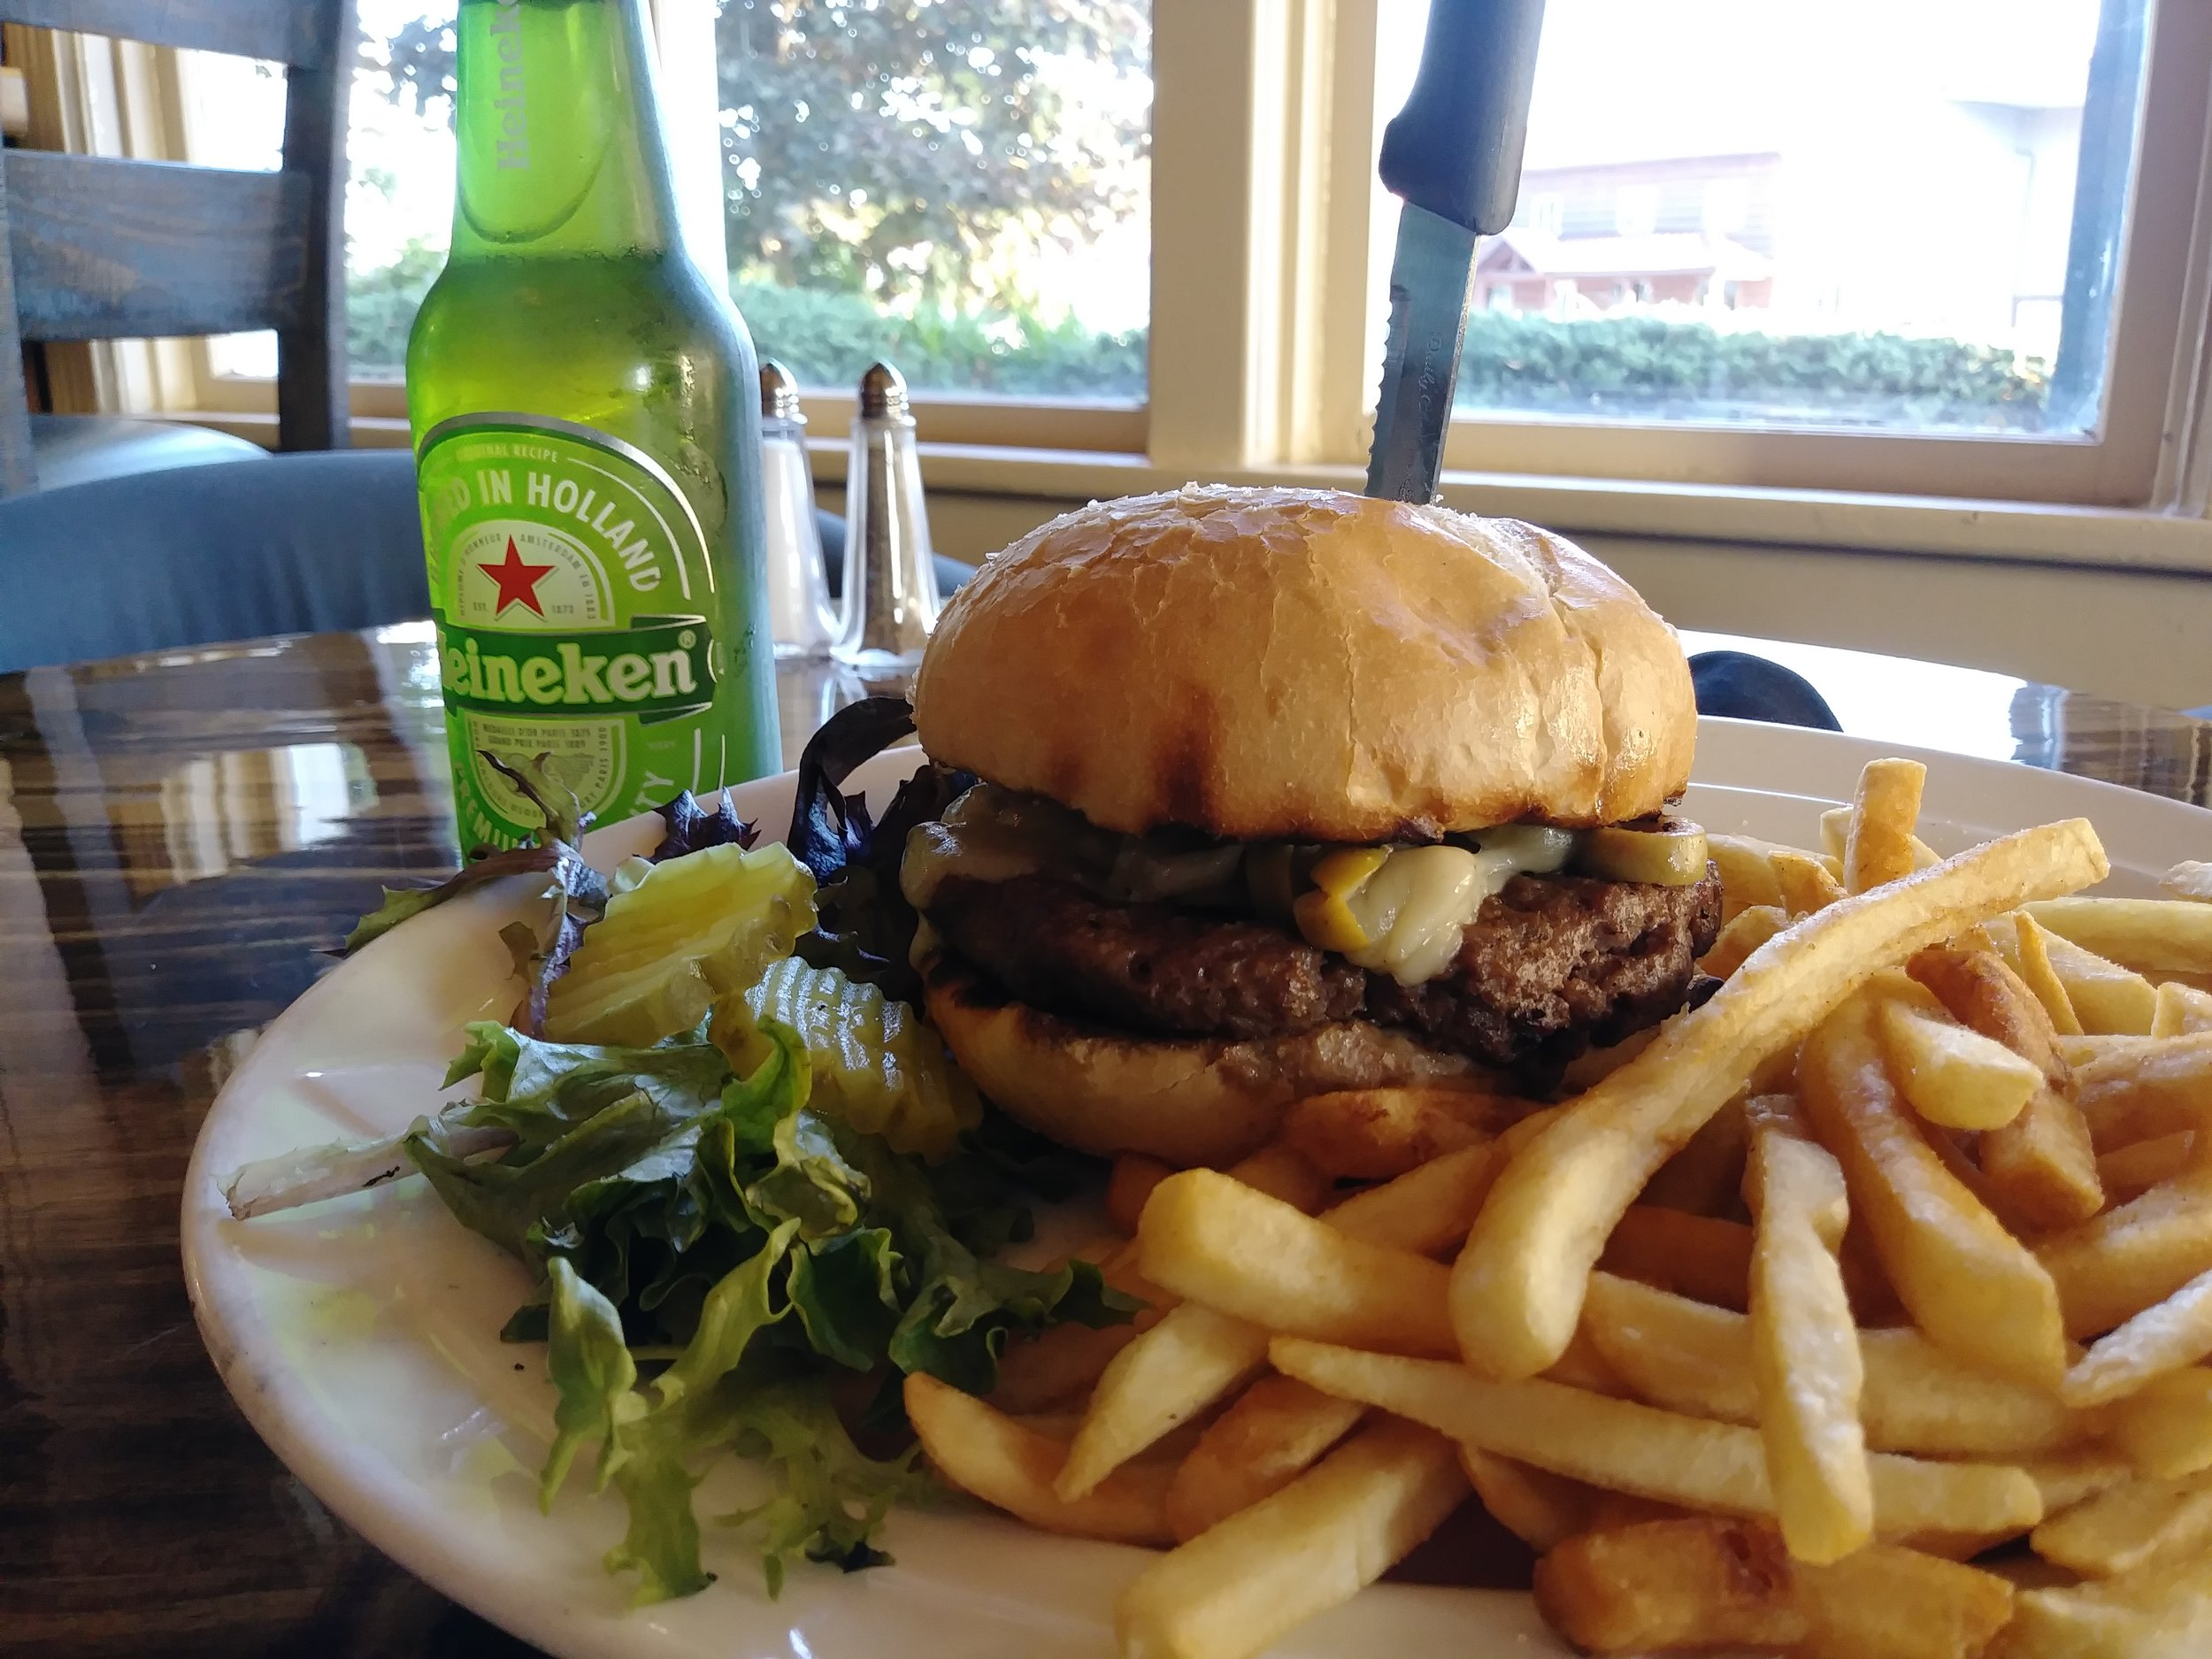 olive burger - For the olive lovers, this burger is loaded with a healthy portion of sautéed green olives and melted Swiss cheese $11.99